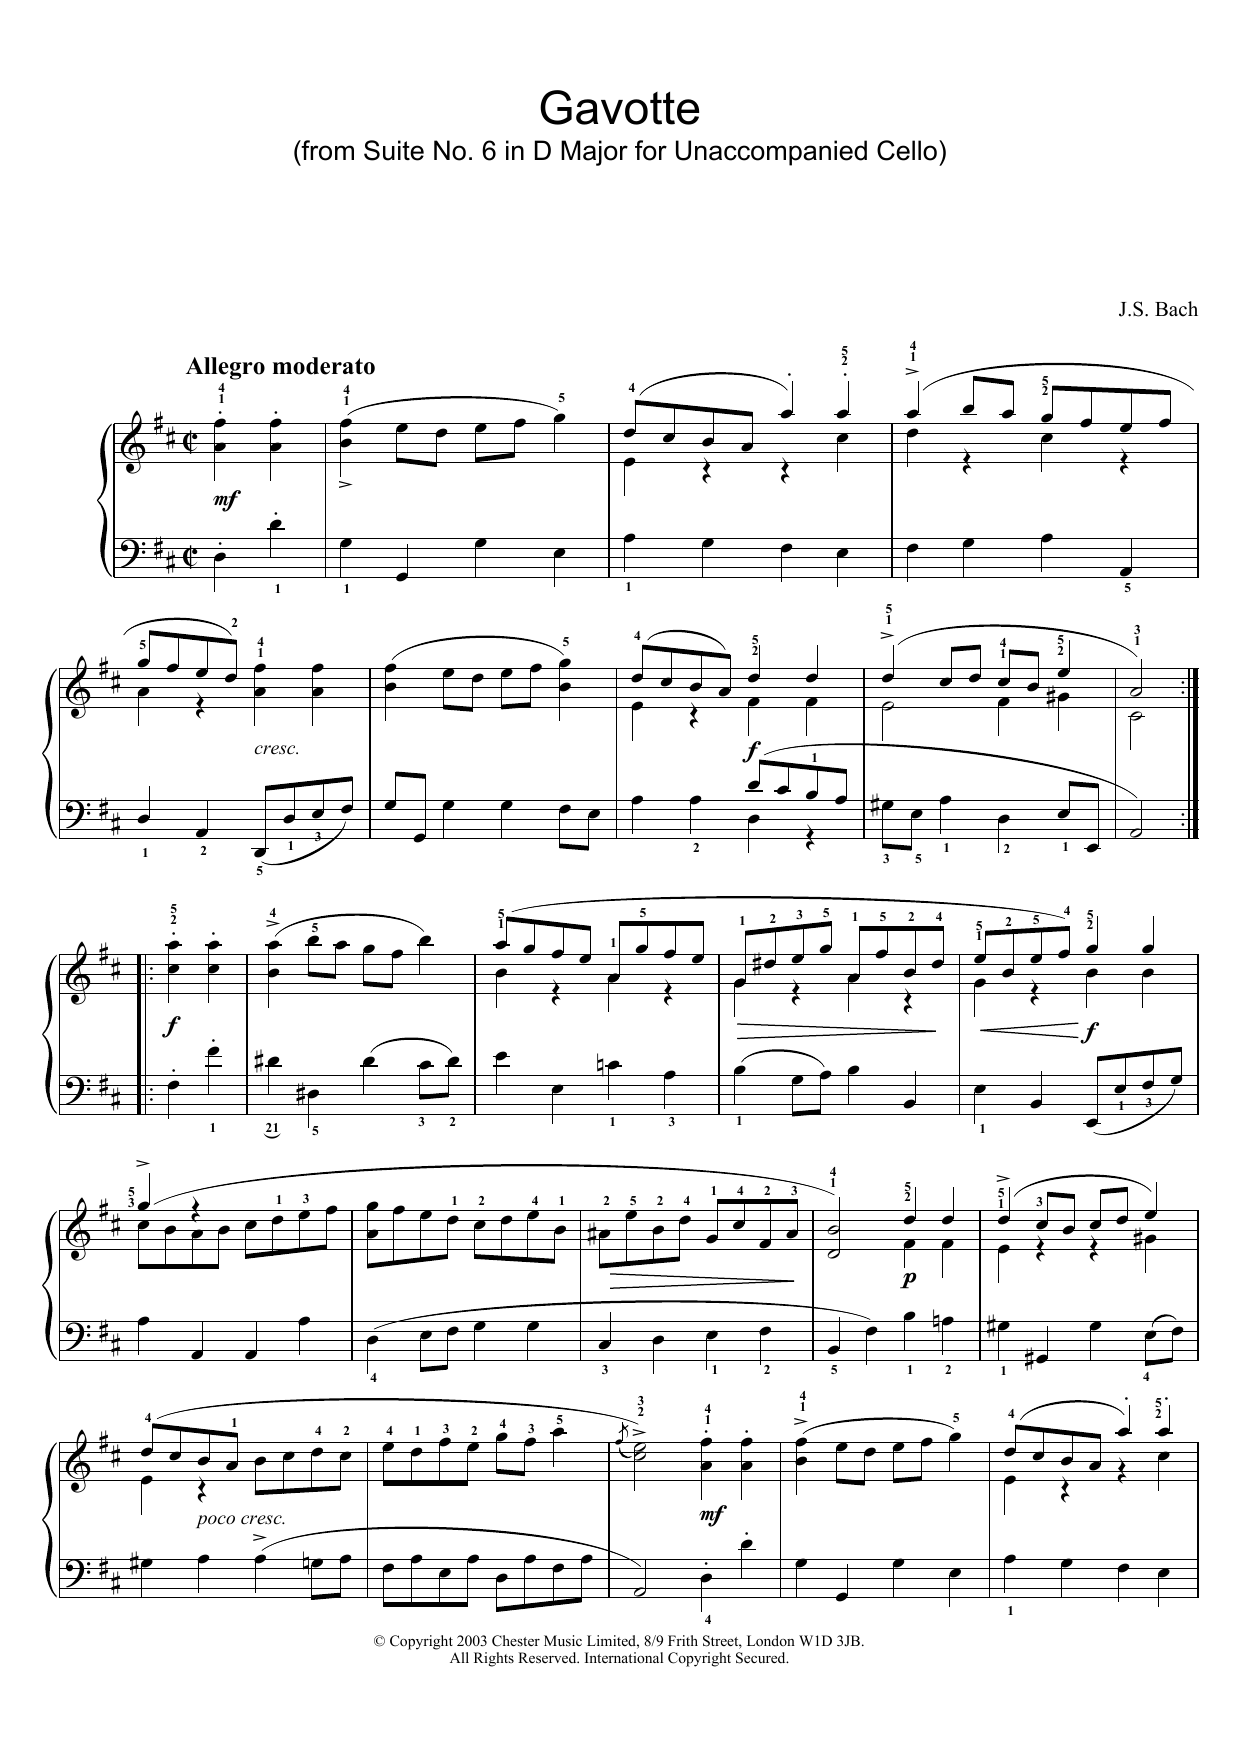 Gavotte (from Suite No. 6 in D Major for Unaccompanied Cello) sheet music